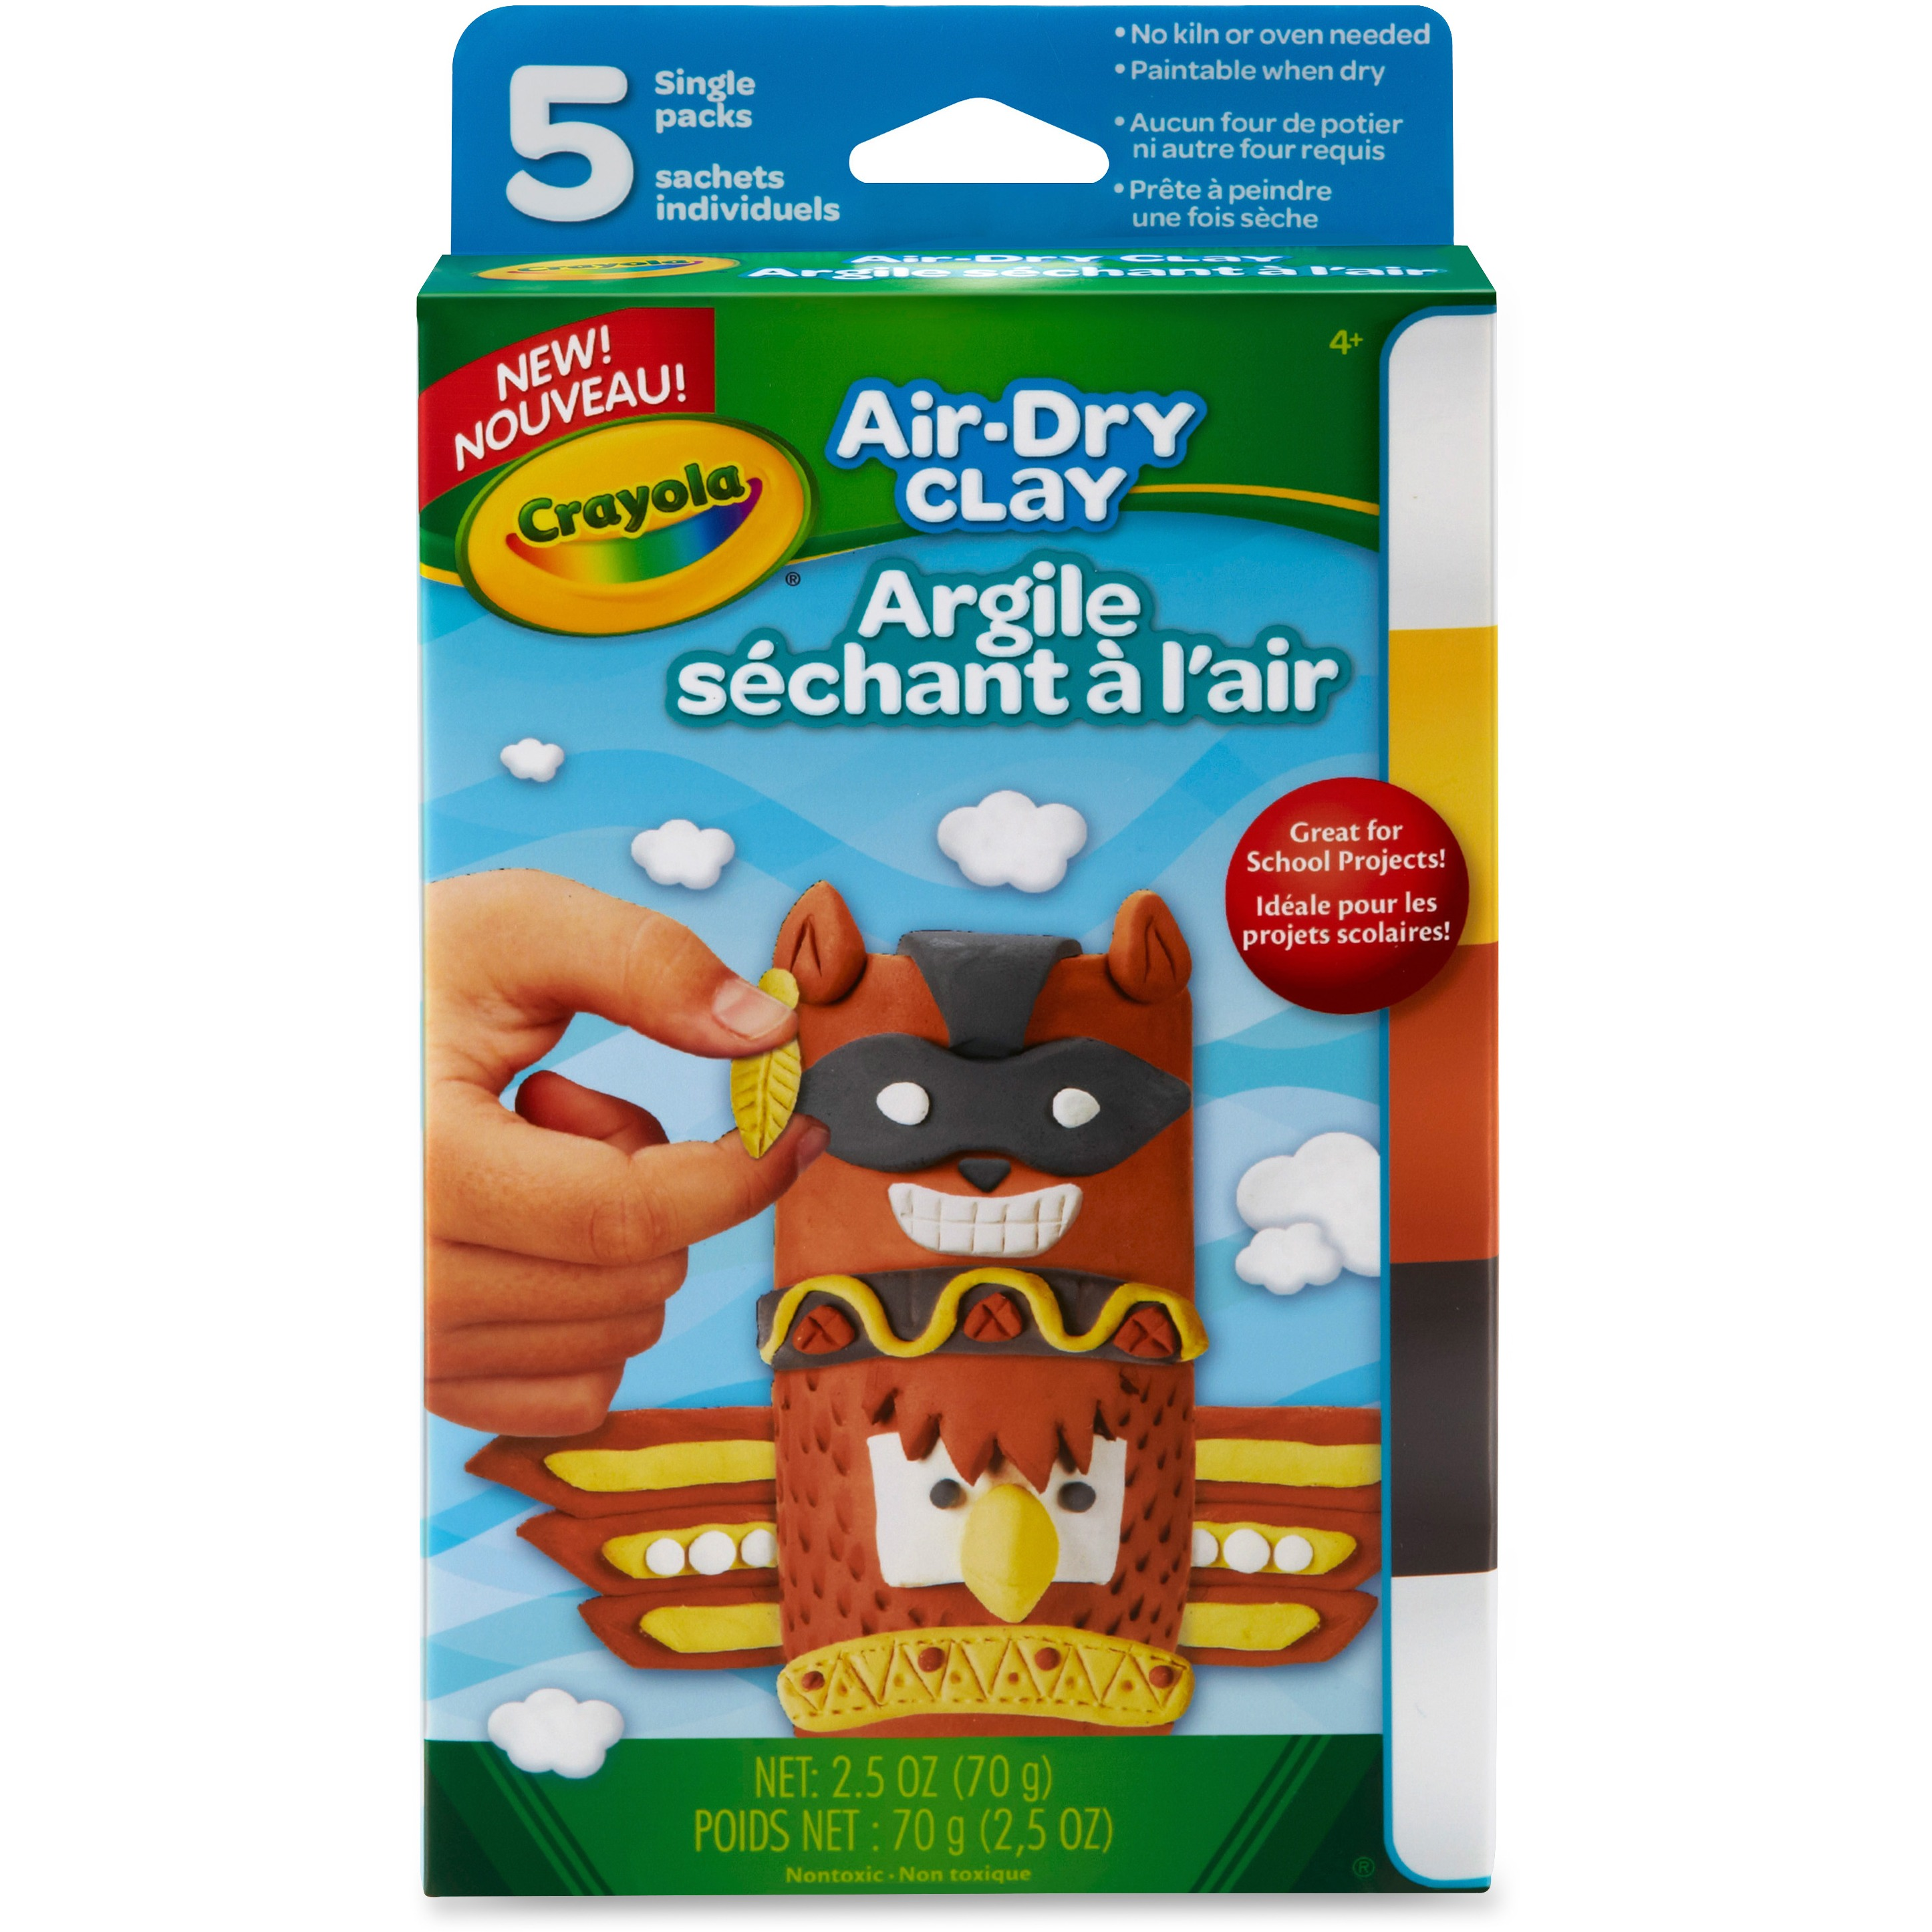 Crayola Air-Dry Clay Variety Pack, 4 Neutral Colors